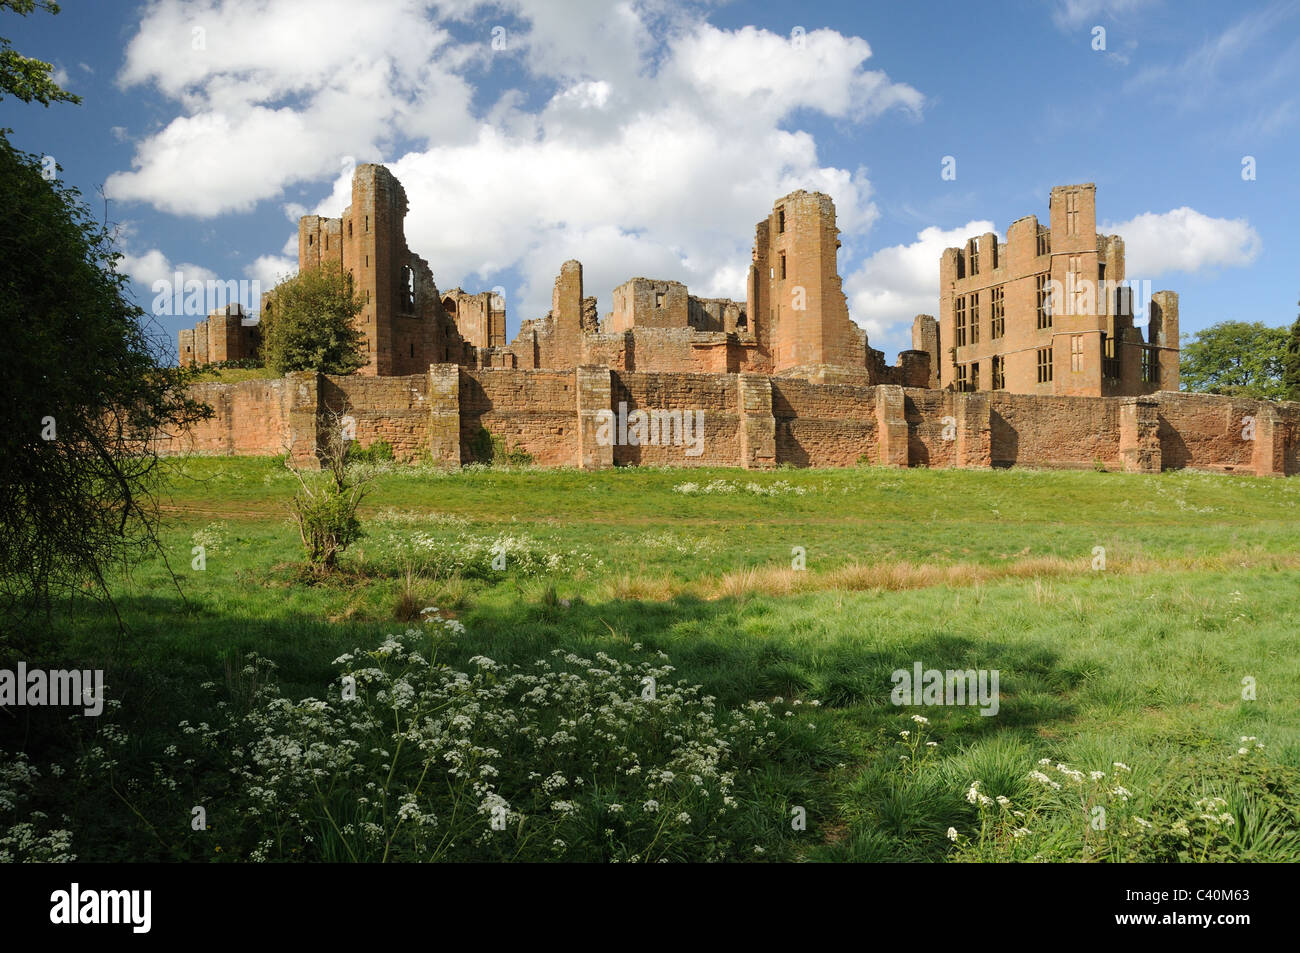 The ruins of Kenilworth Castle, in Kenilworth, Warwickshire, England - Stock Image